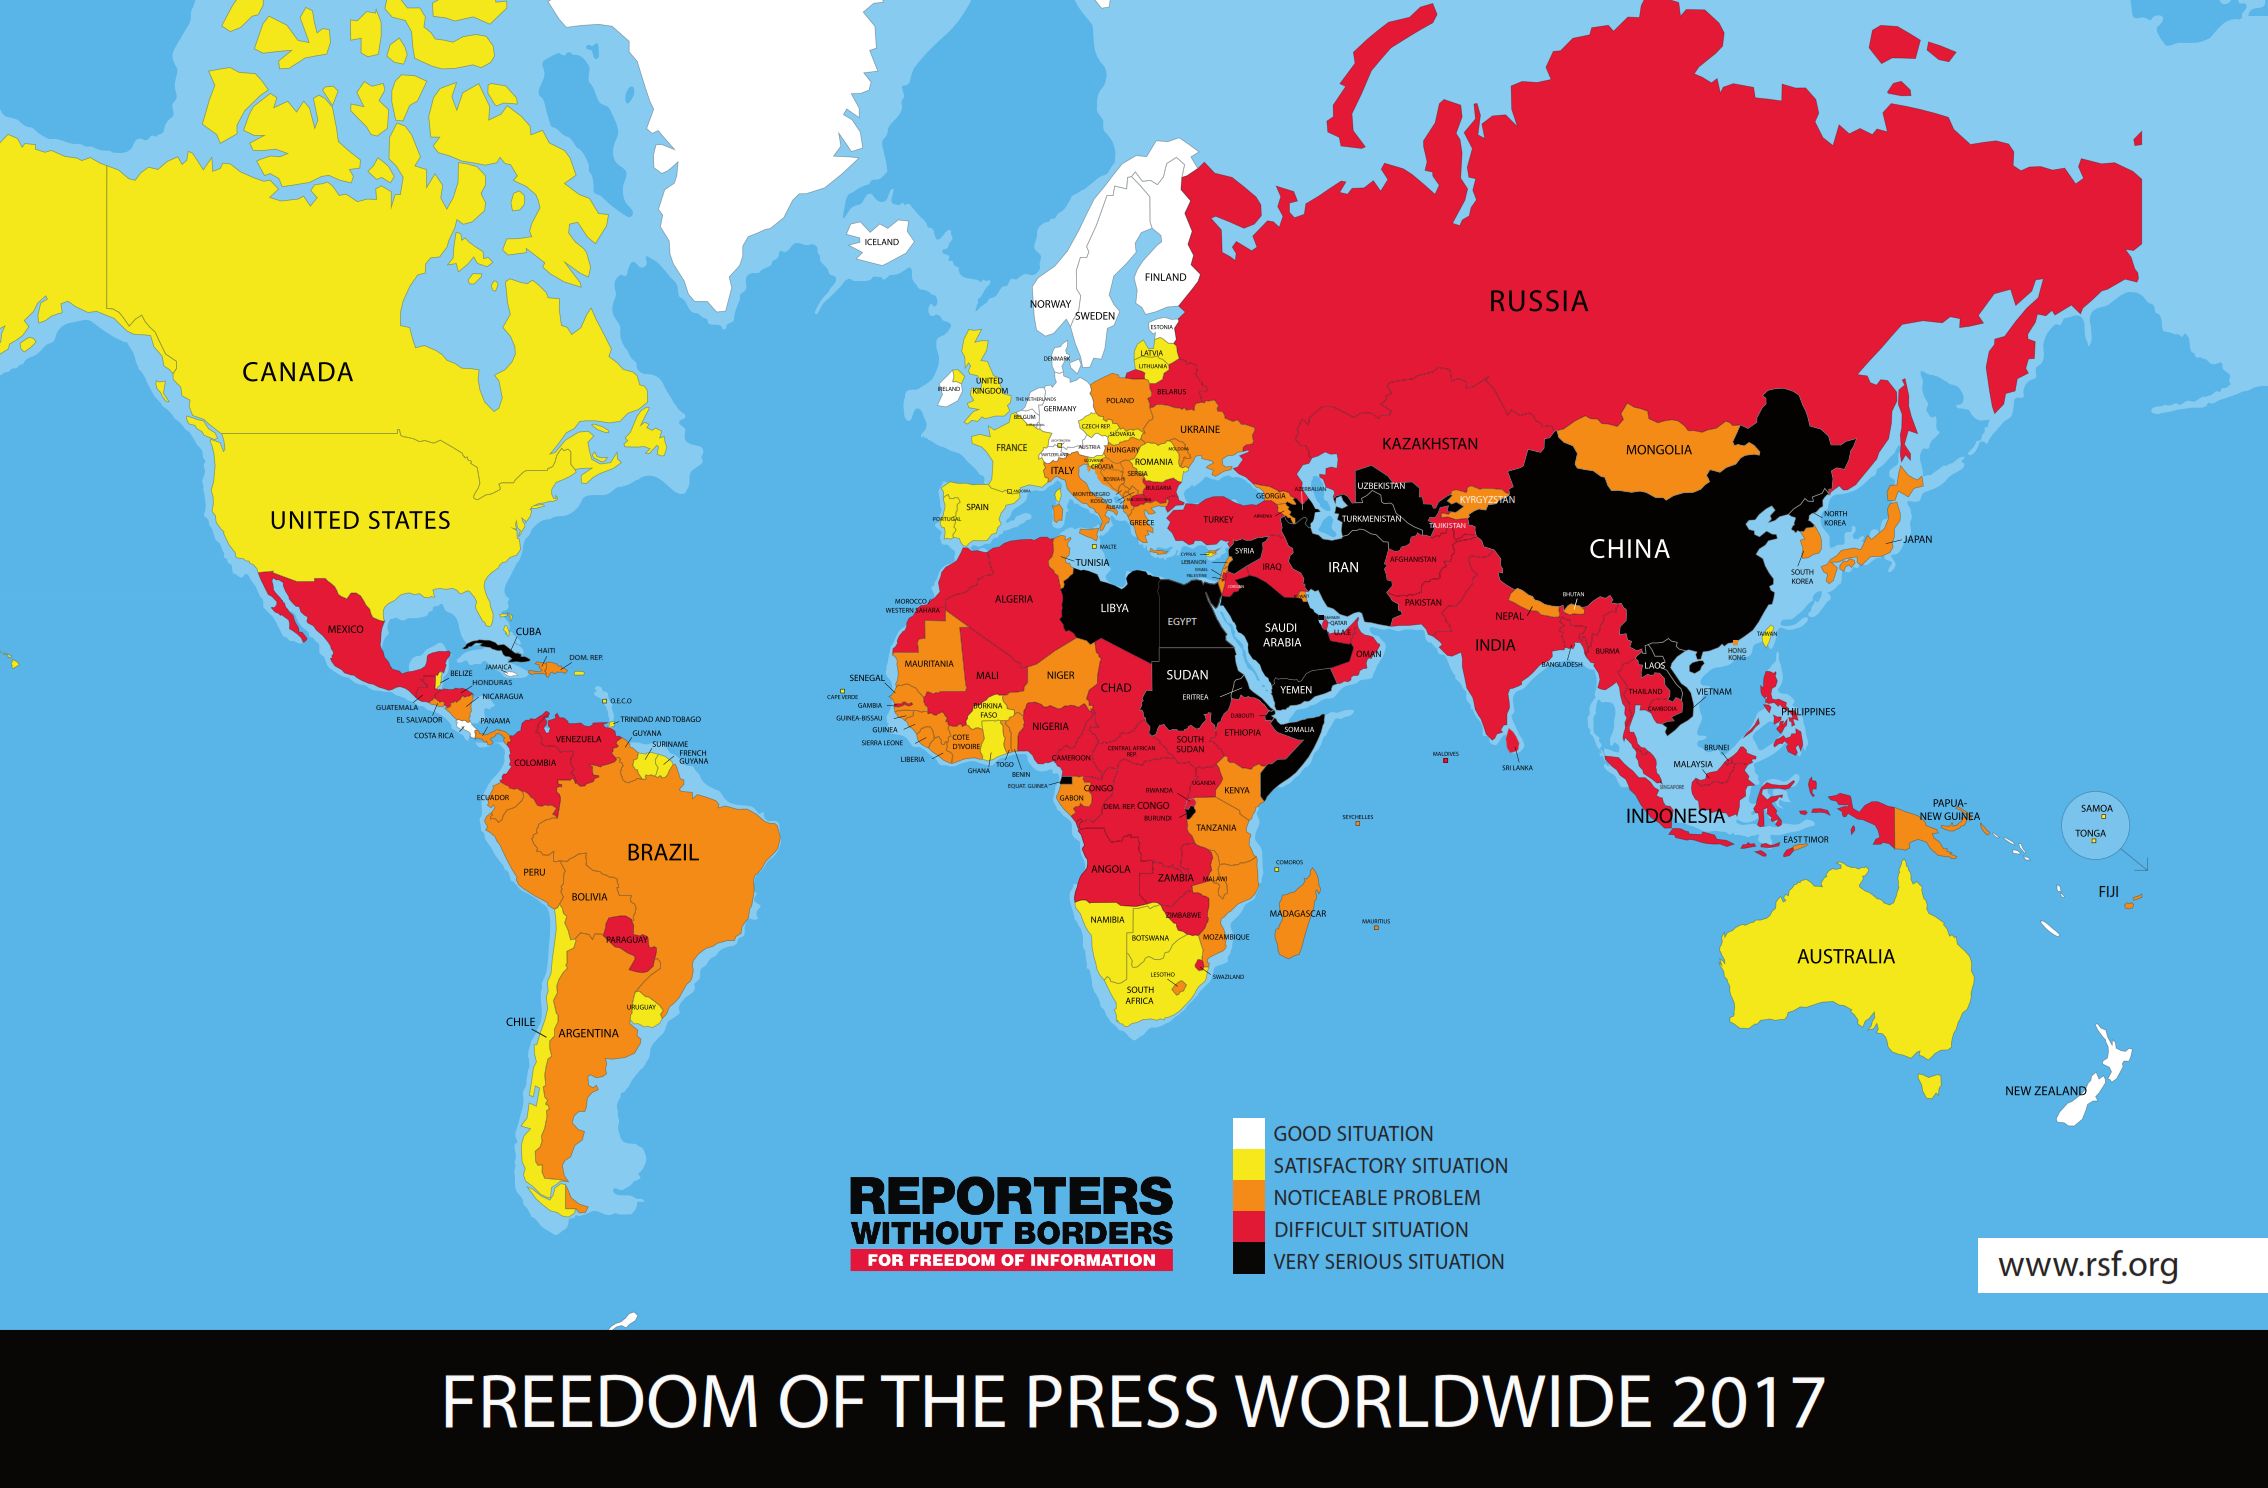 2017 World Press Freedom Index by Reporters Without Borders